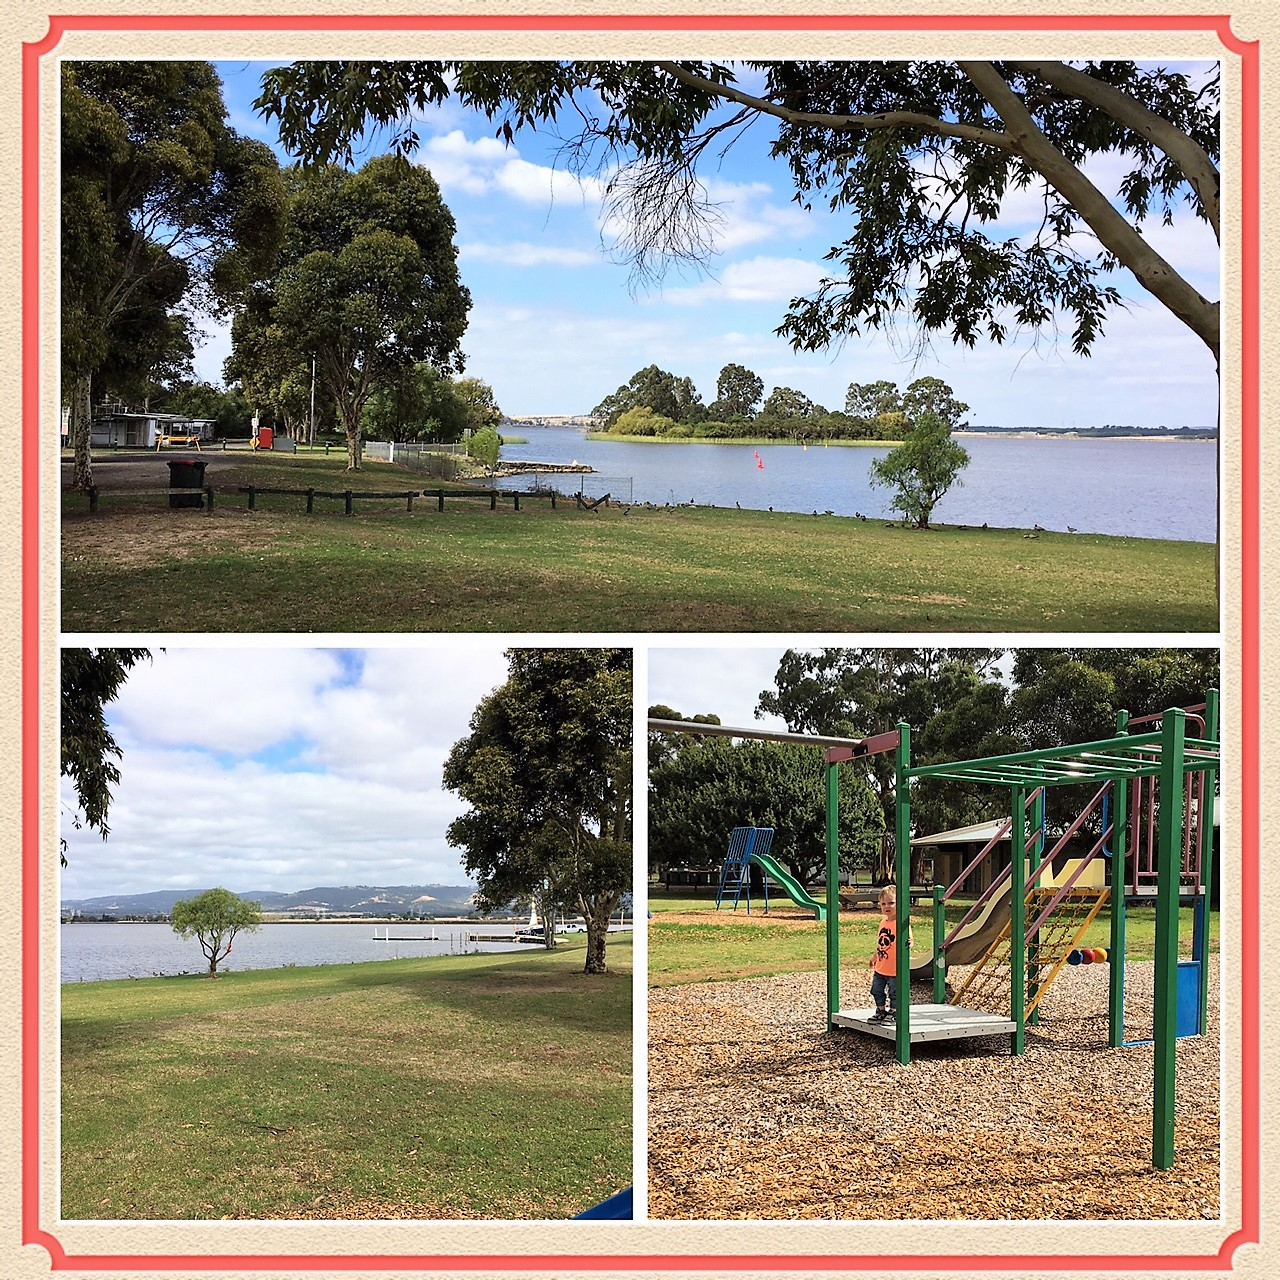 Hazelwood Pondage - A great place to visit!